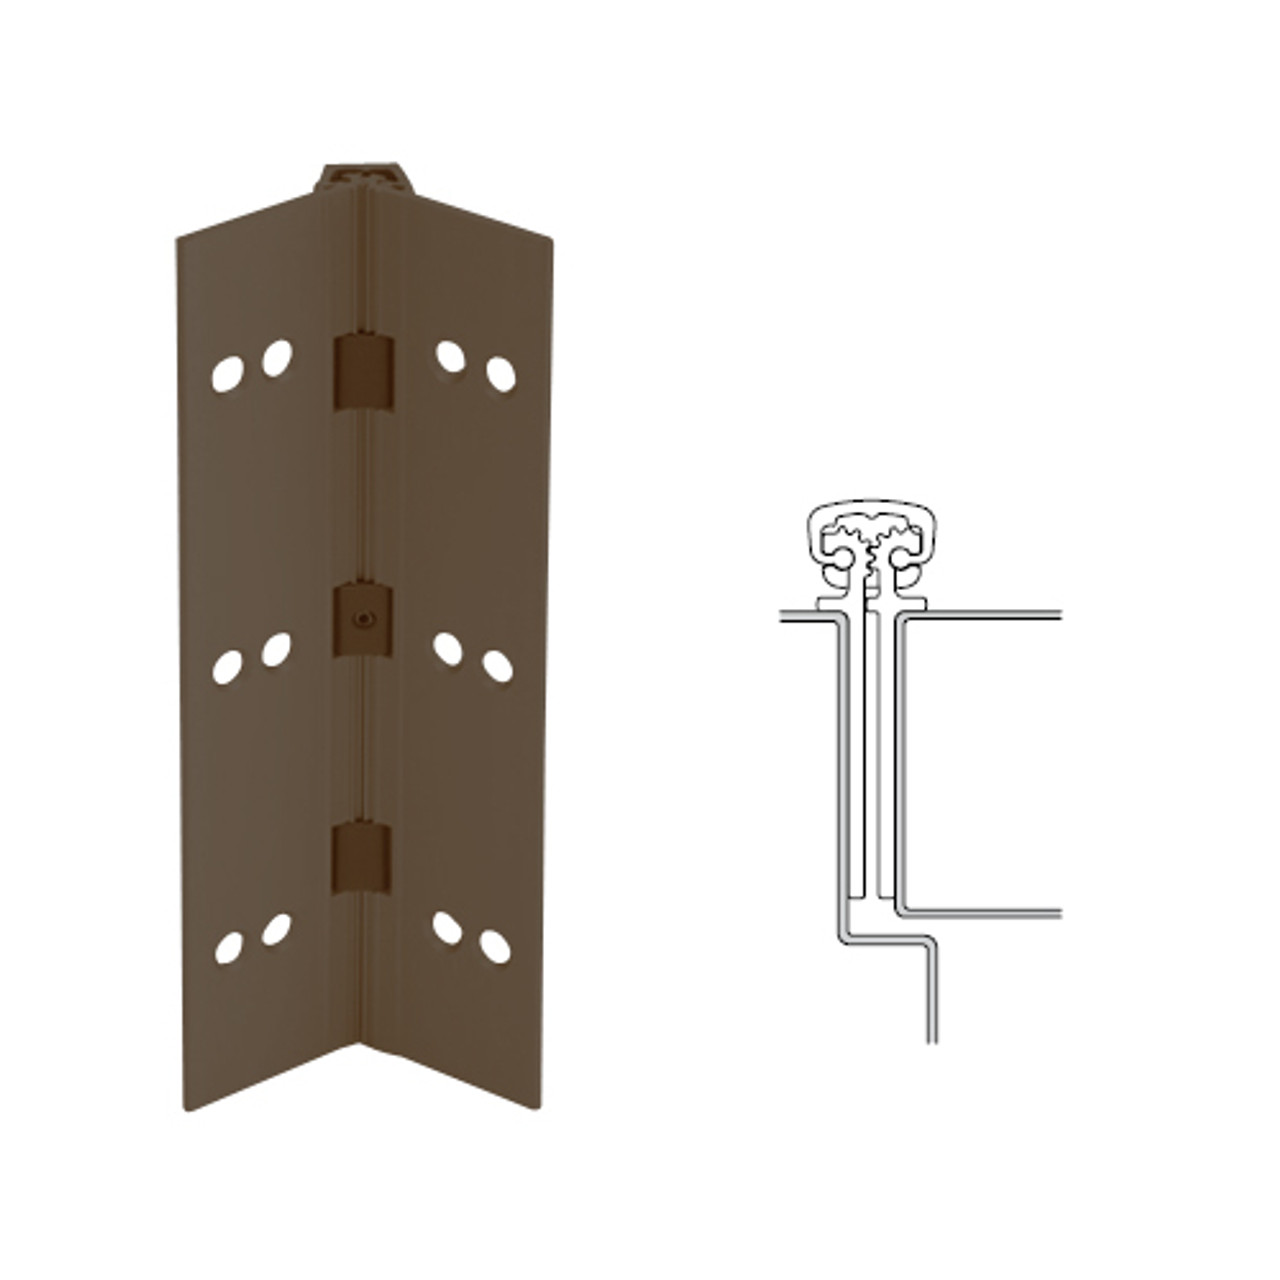 027XY-313AN-95-TEKWD IVES Full Mortise Continuous Geared Hinges with Wood Screws in Dark Bronze Anodized